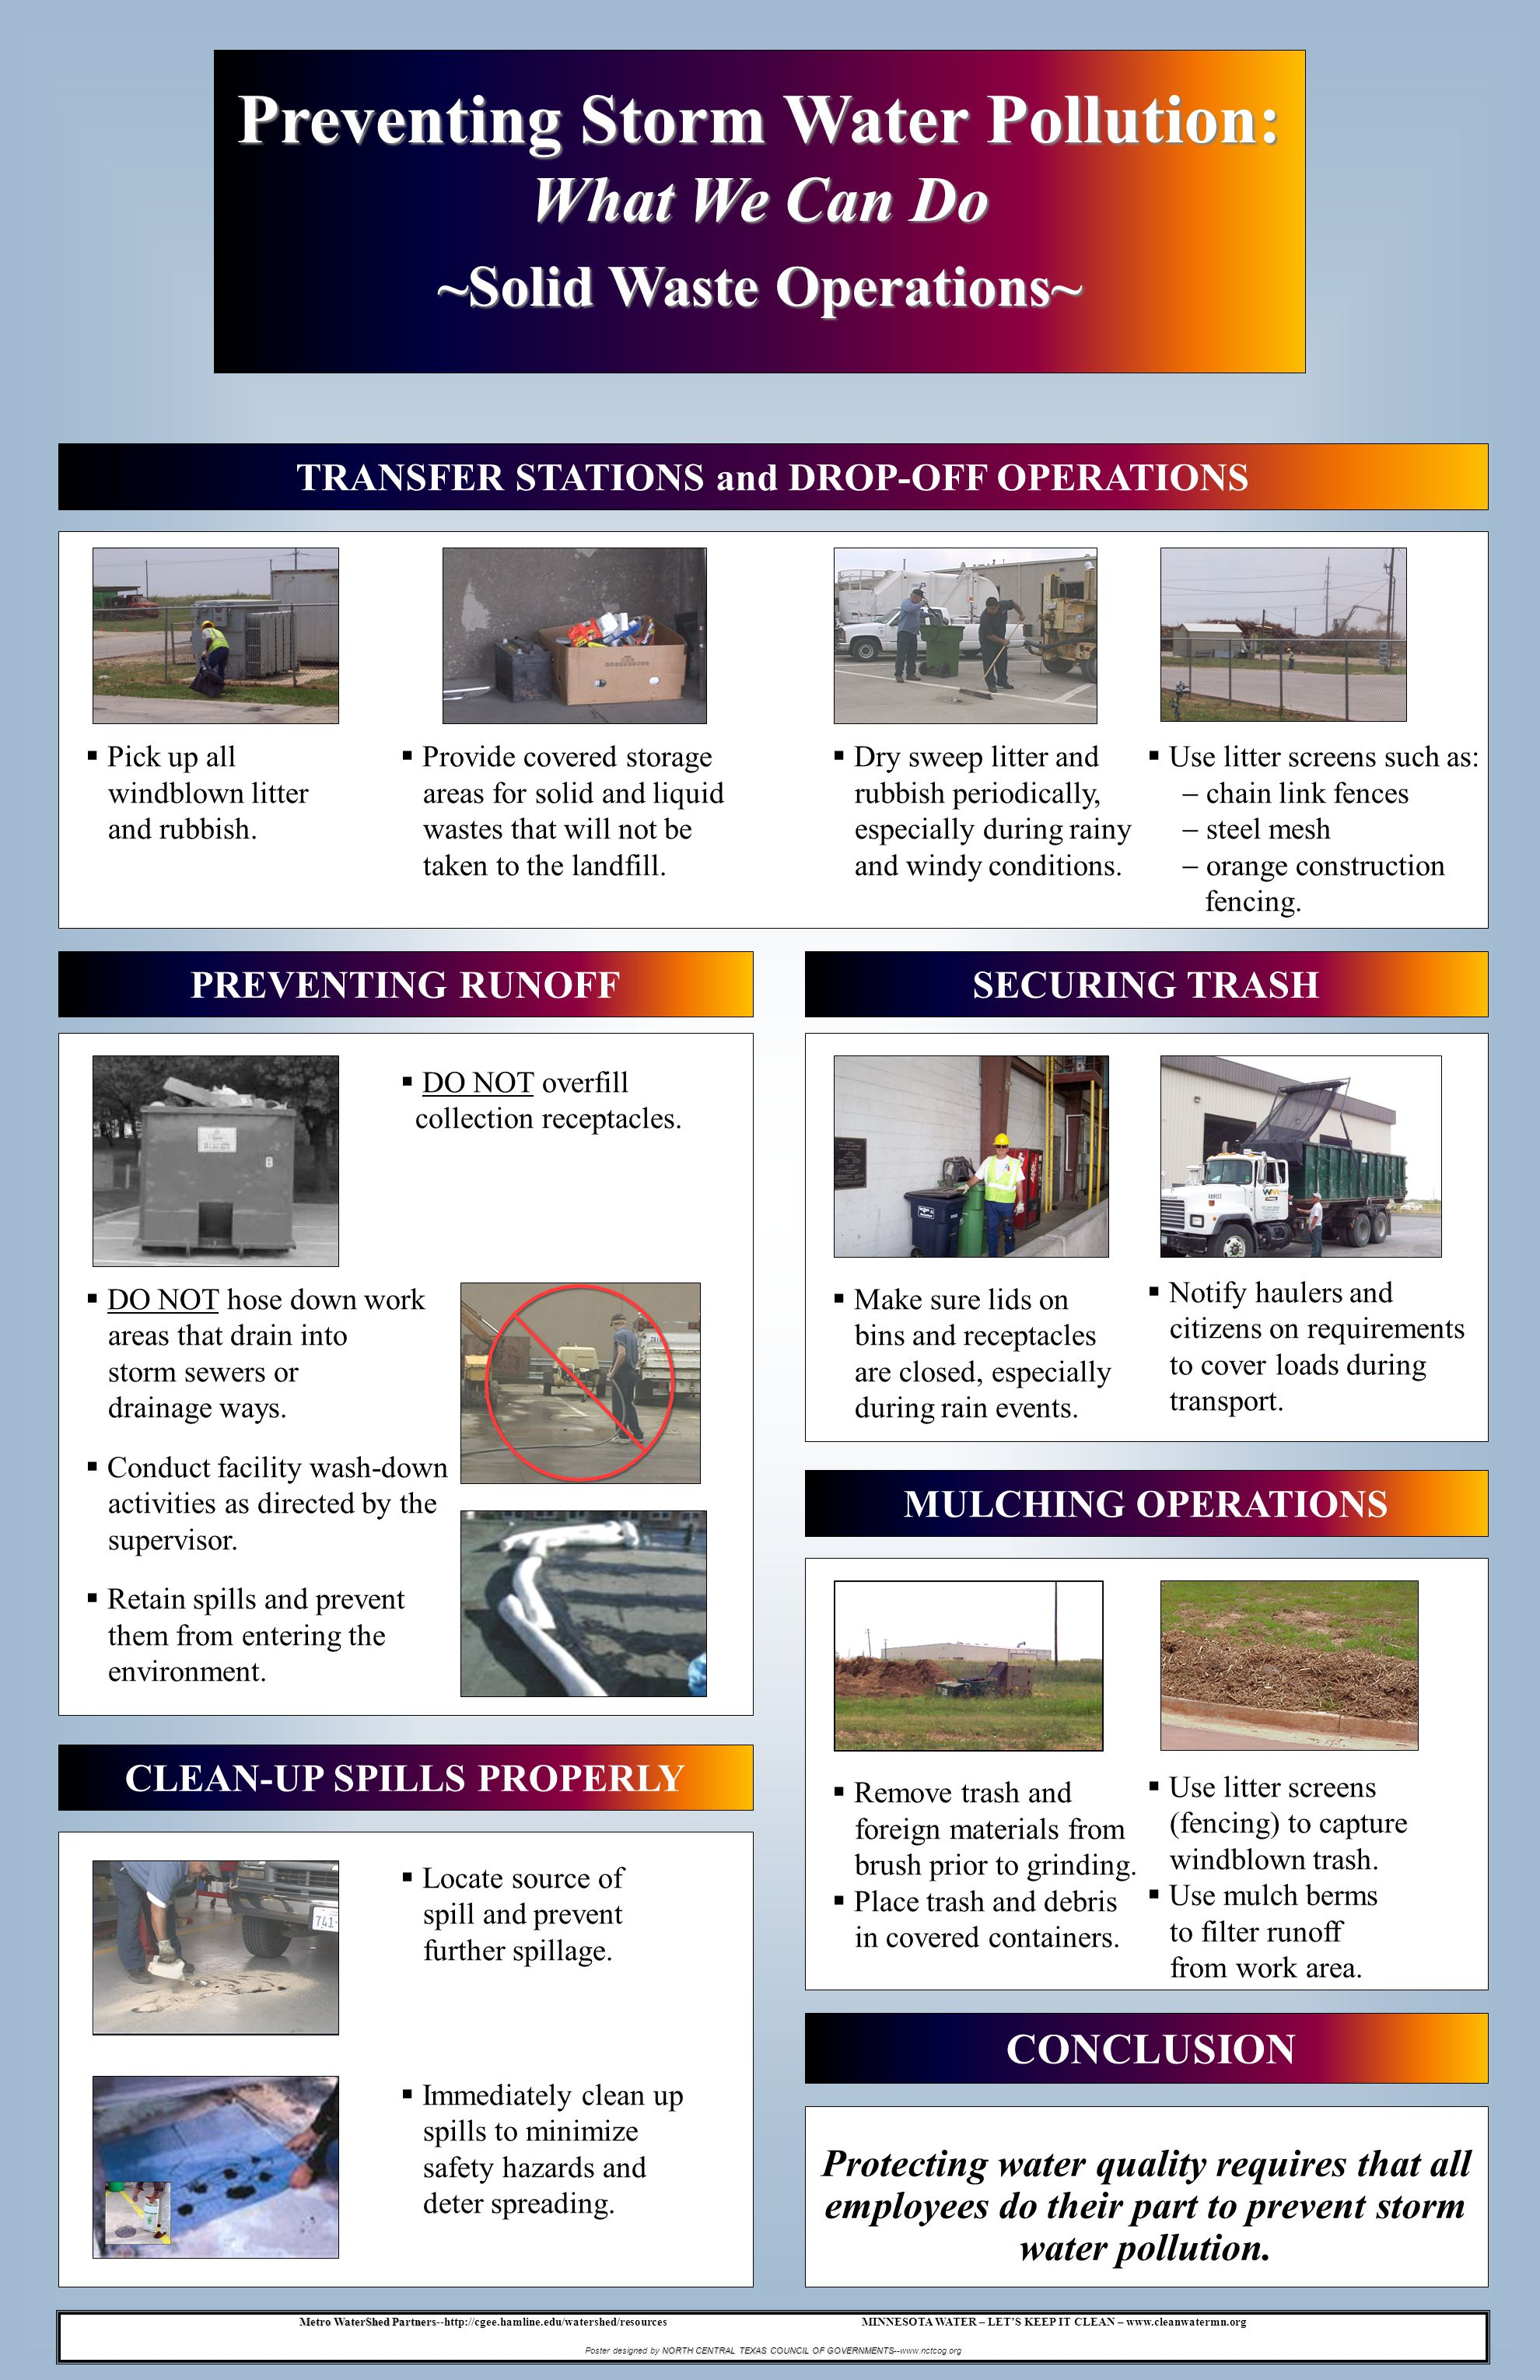 TRANSFER STATIONS and DROP-OFF OPERATIONS Protecting water quality requires that all employees do their part to prevent storm water pollution.